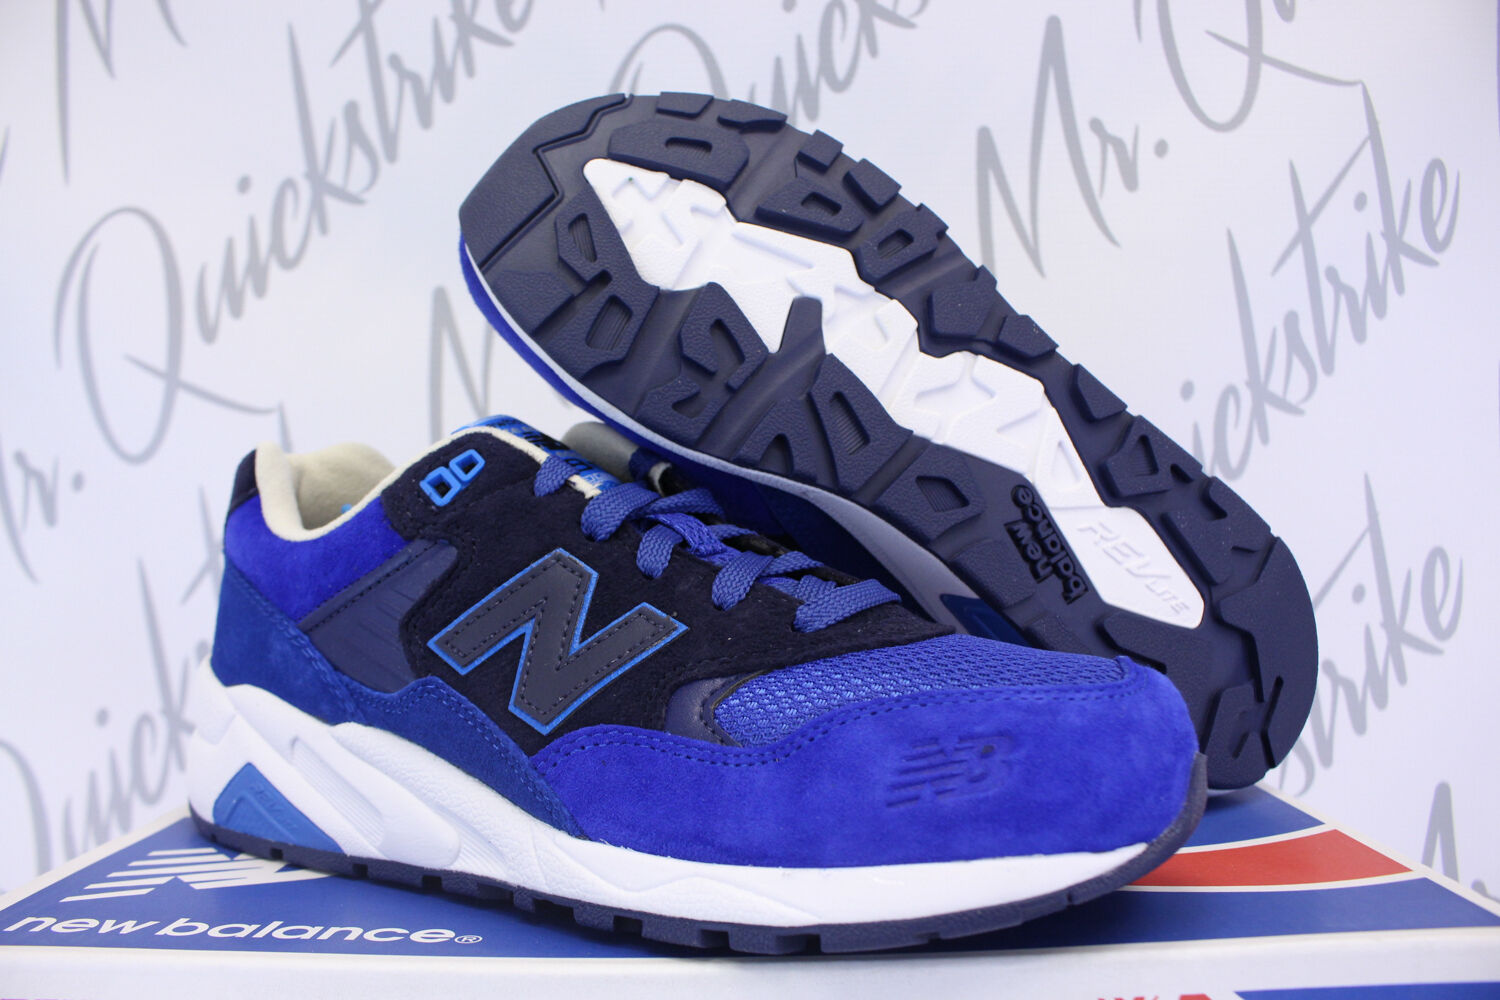 NEW BALANCE 580 SZ 7 SAILOR ELITE EDITION PAPER LIGHTS SAILOR 7 PACIFIC BLUE MRT580RA 383002